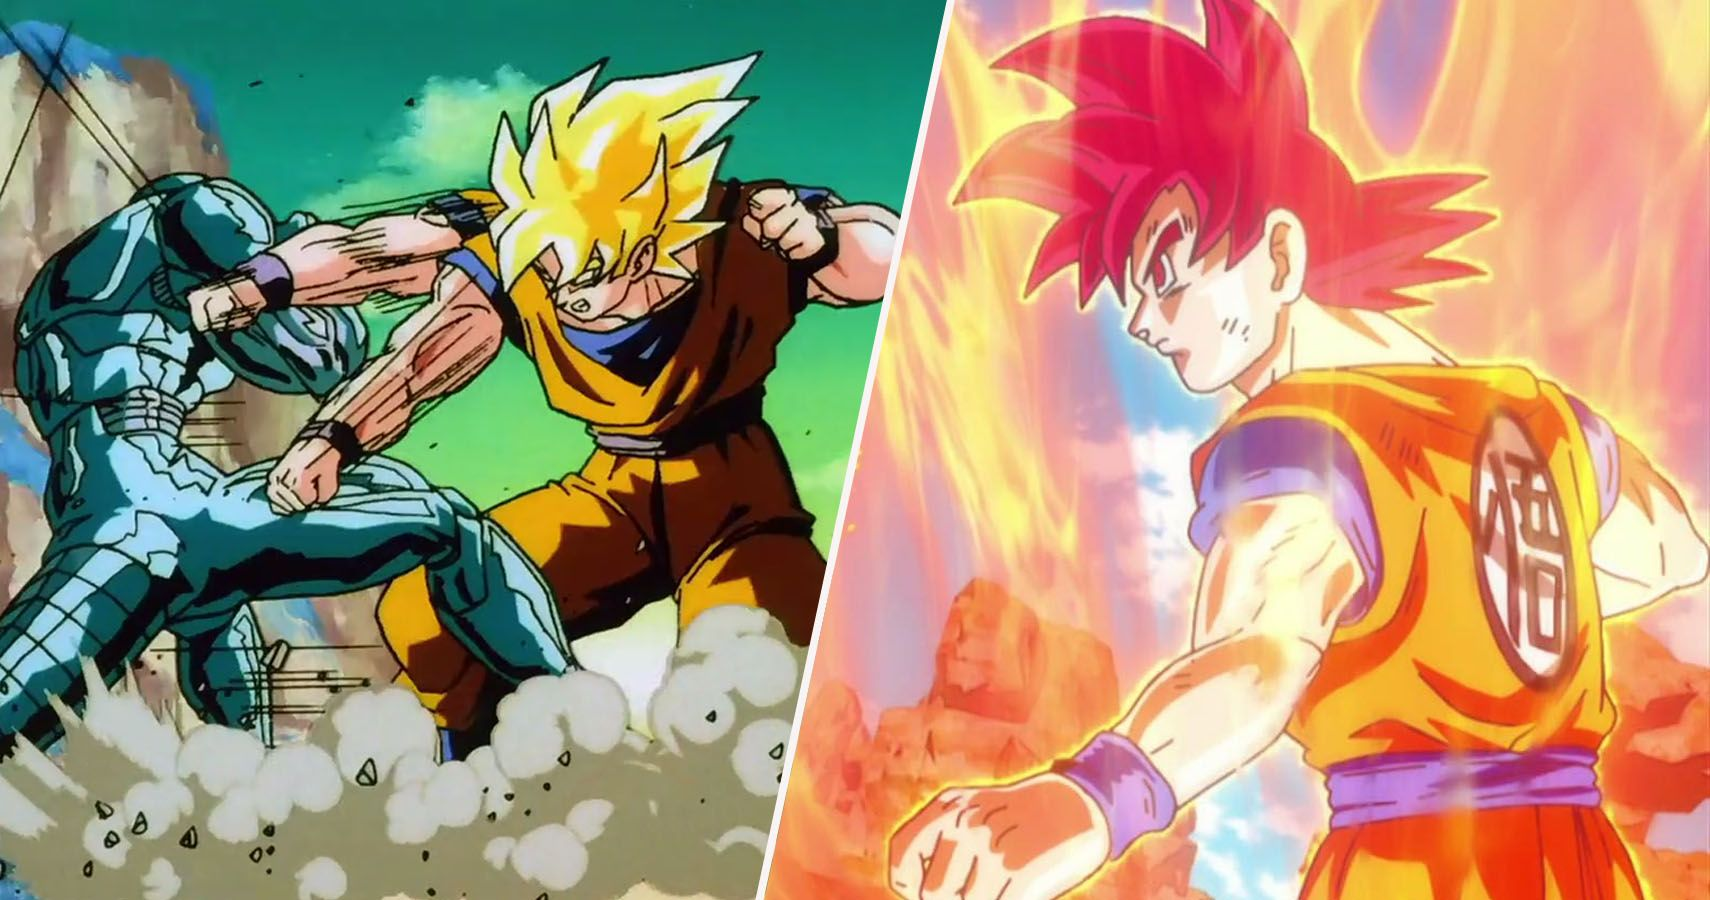 Dragon Ball Goku S 10 Best Fights In The Movies Game Rant Sakuradawn1996, anndabfmv and 2 others like this. dragon ball goku s 10 best fights in